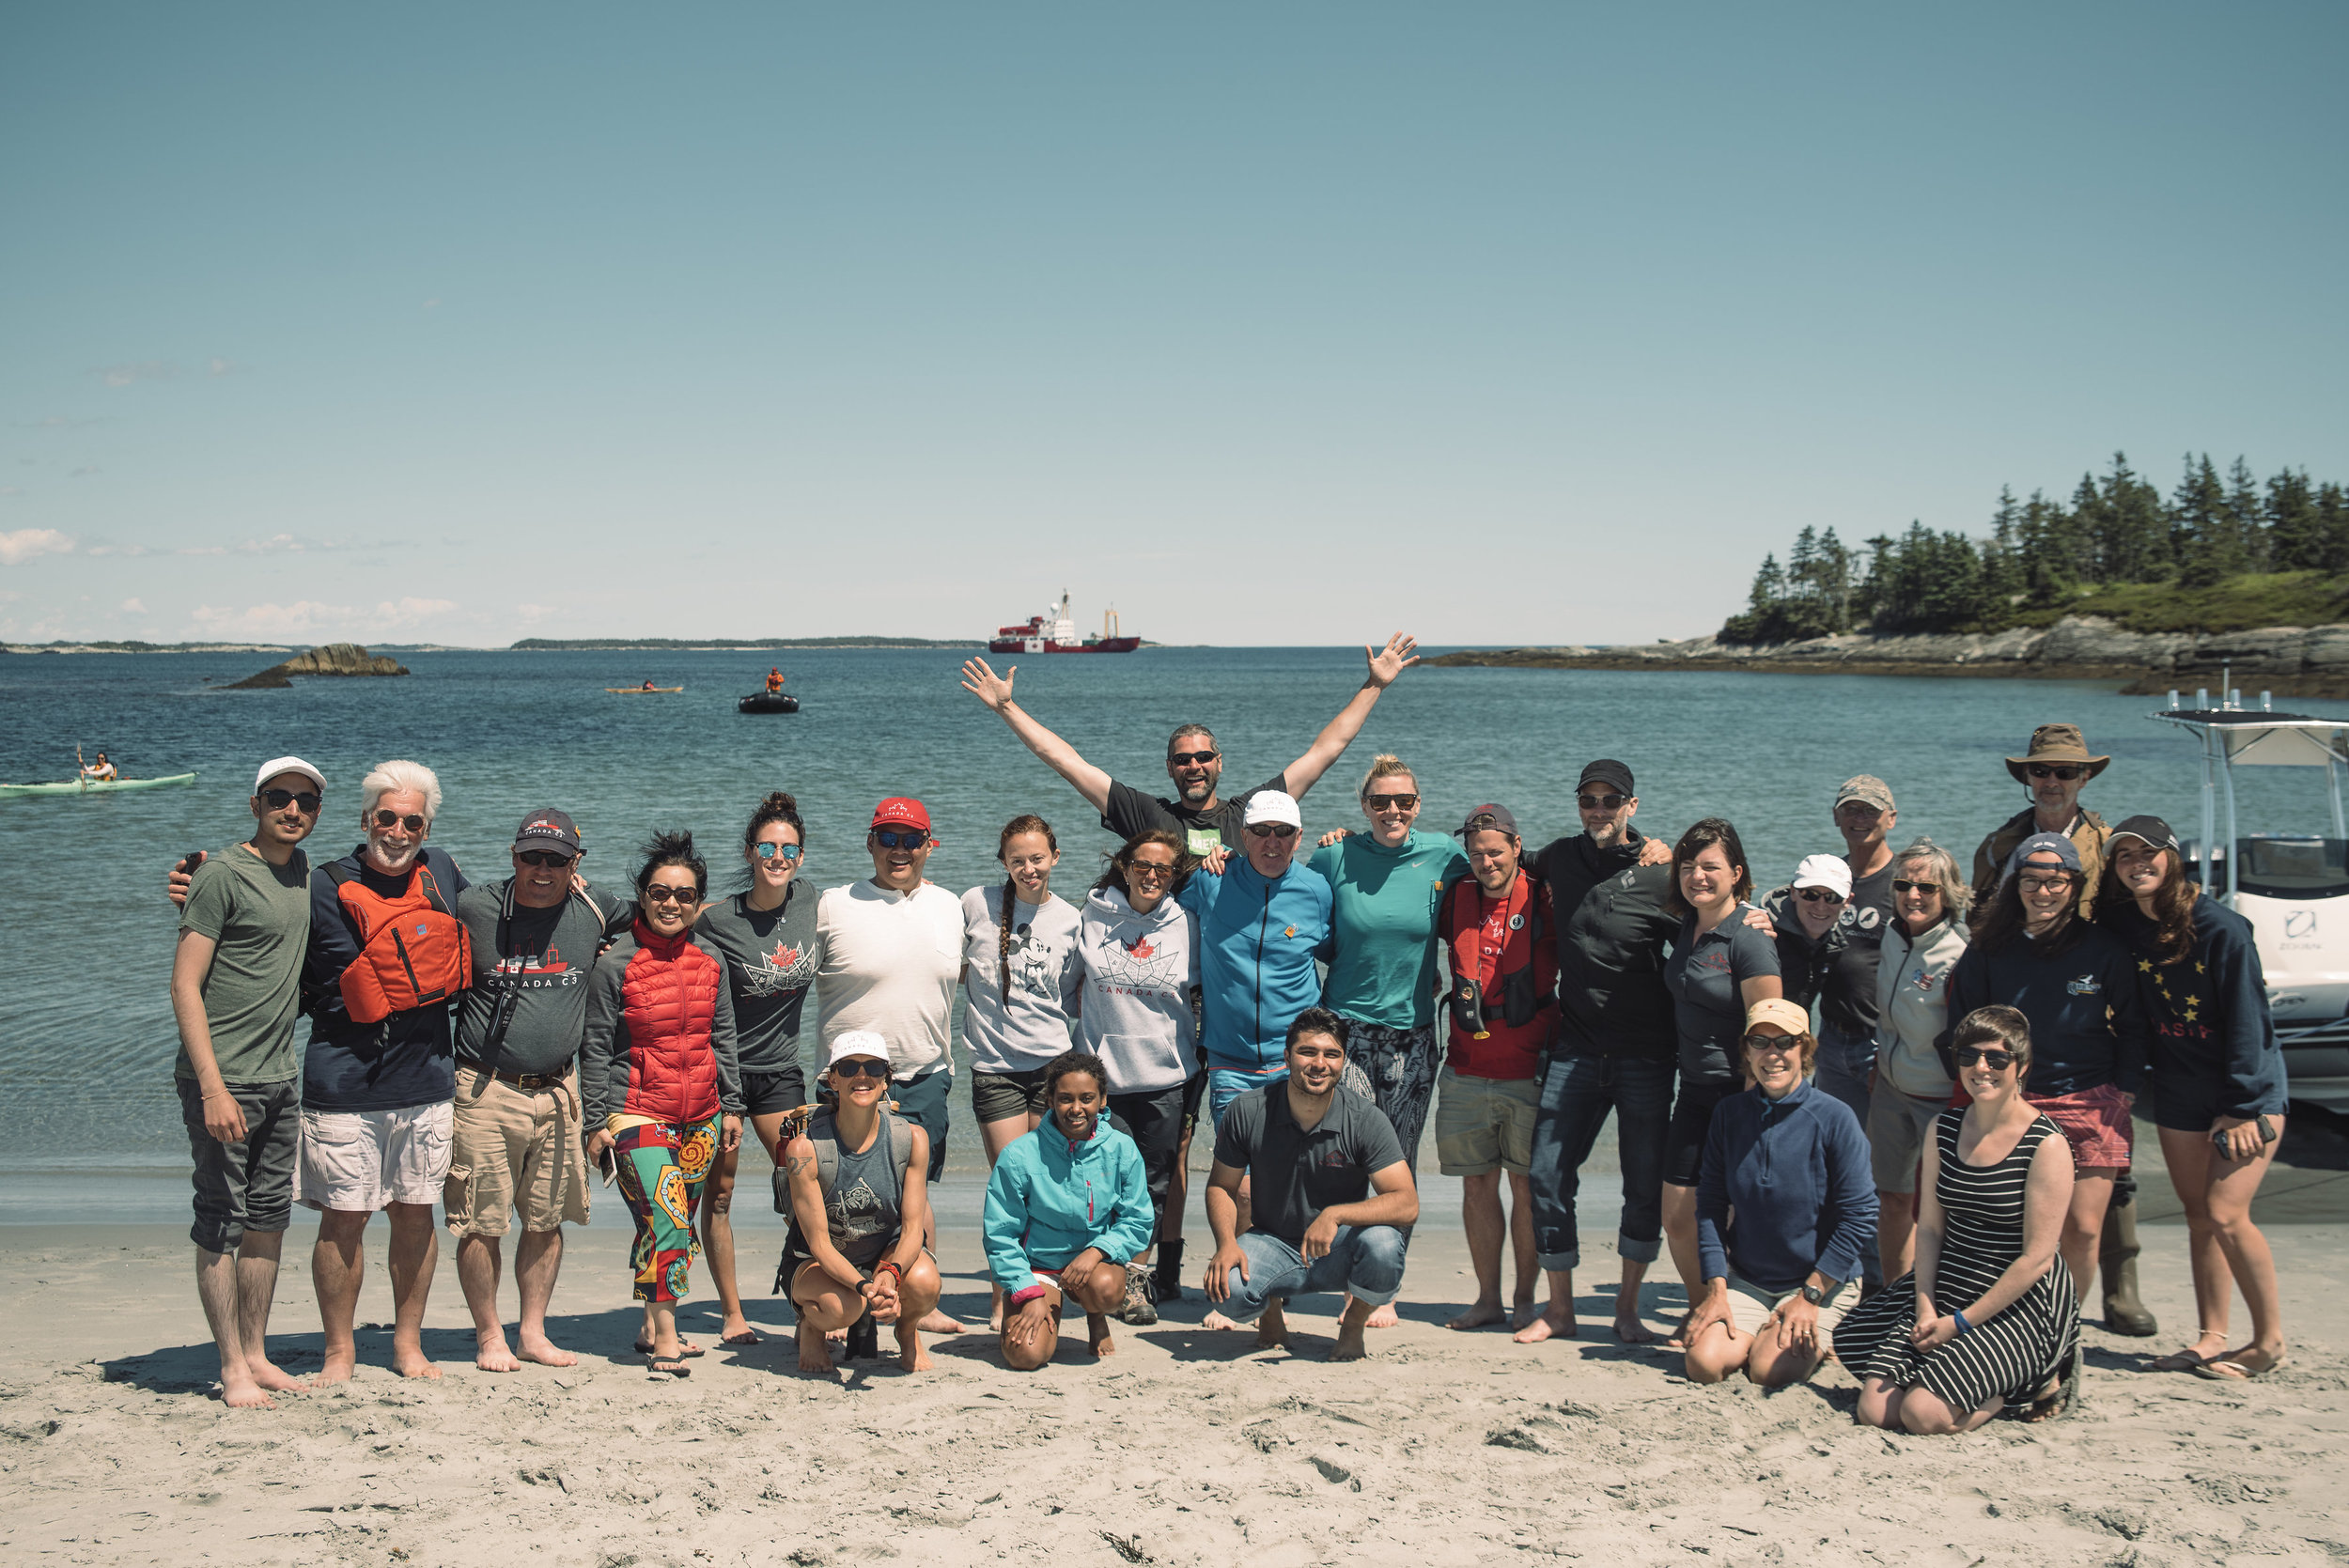 The Canada C3 Team, along with Nature Trust staff, scientists and 100 Wild Island campaign team members. Photo: Alexa Cude.